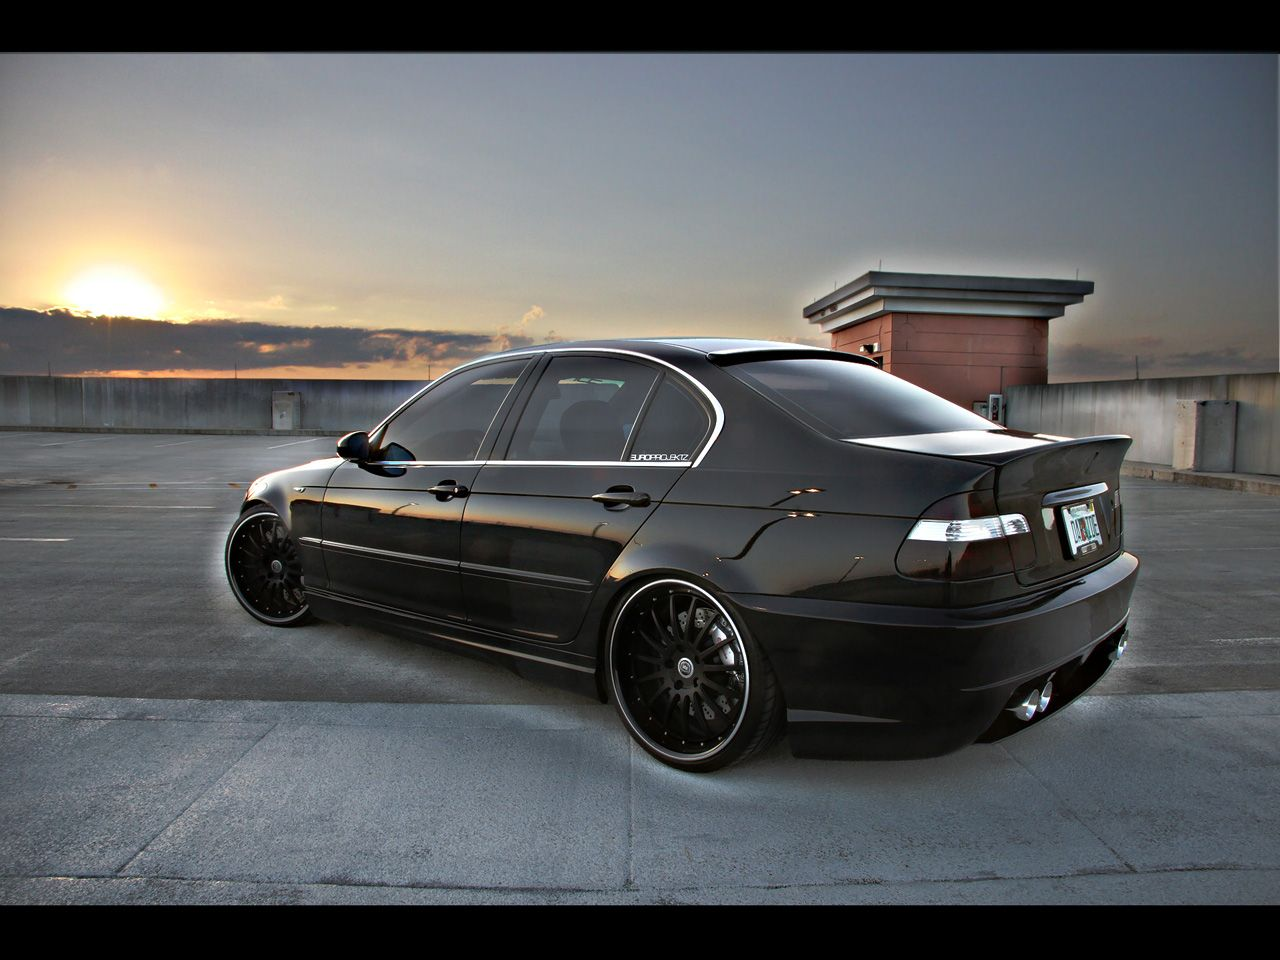 bmw 330i e46 tuning seitenansicht wallpaper schwarze felgen bemmer bmw pinterest bmw. Black Bedroom Furniture Sets. Home Design Ideas